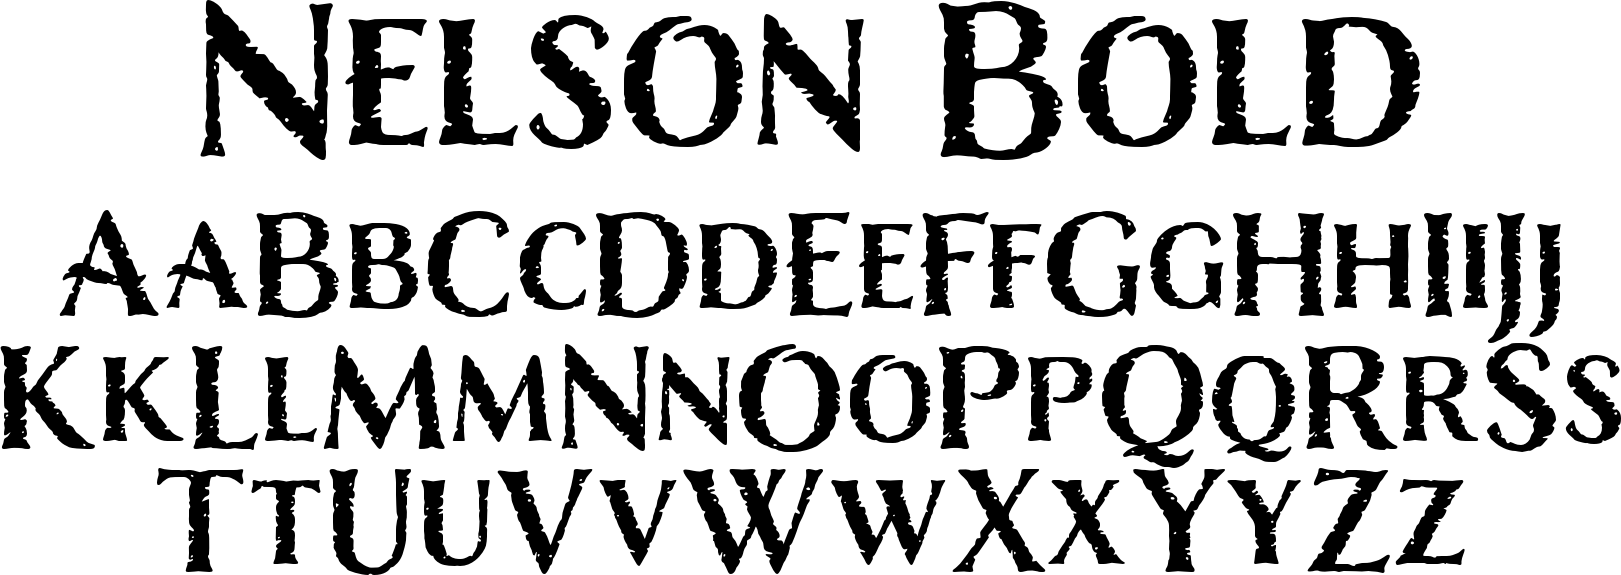 Nelson Bold Font by Laura Worthington : Font Bros